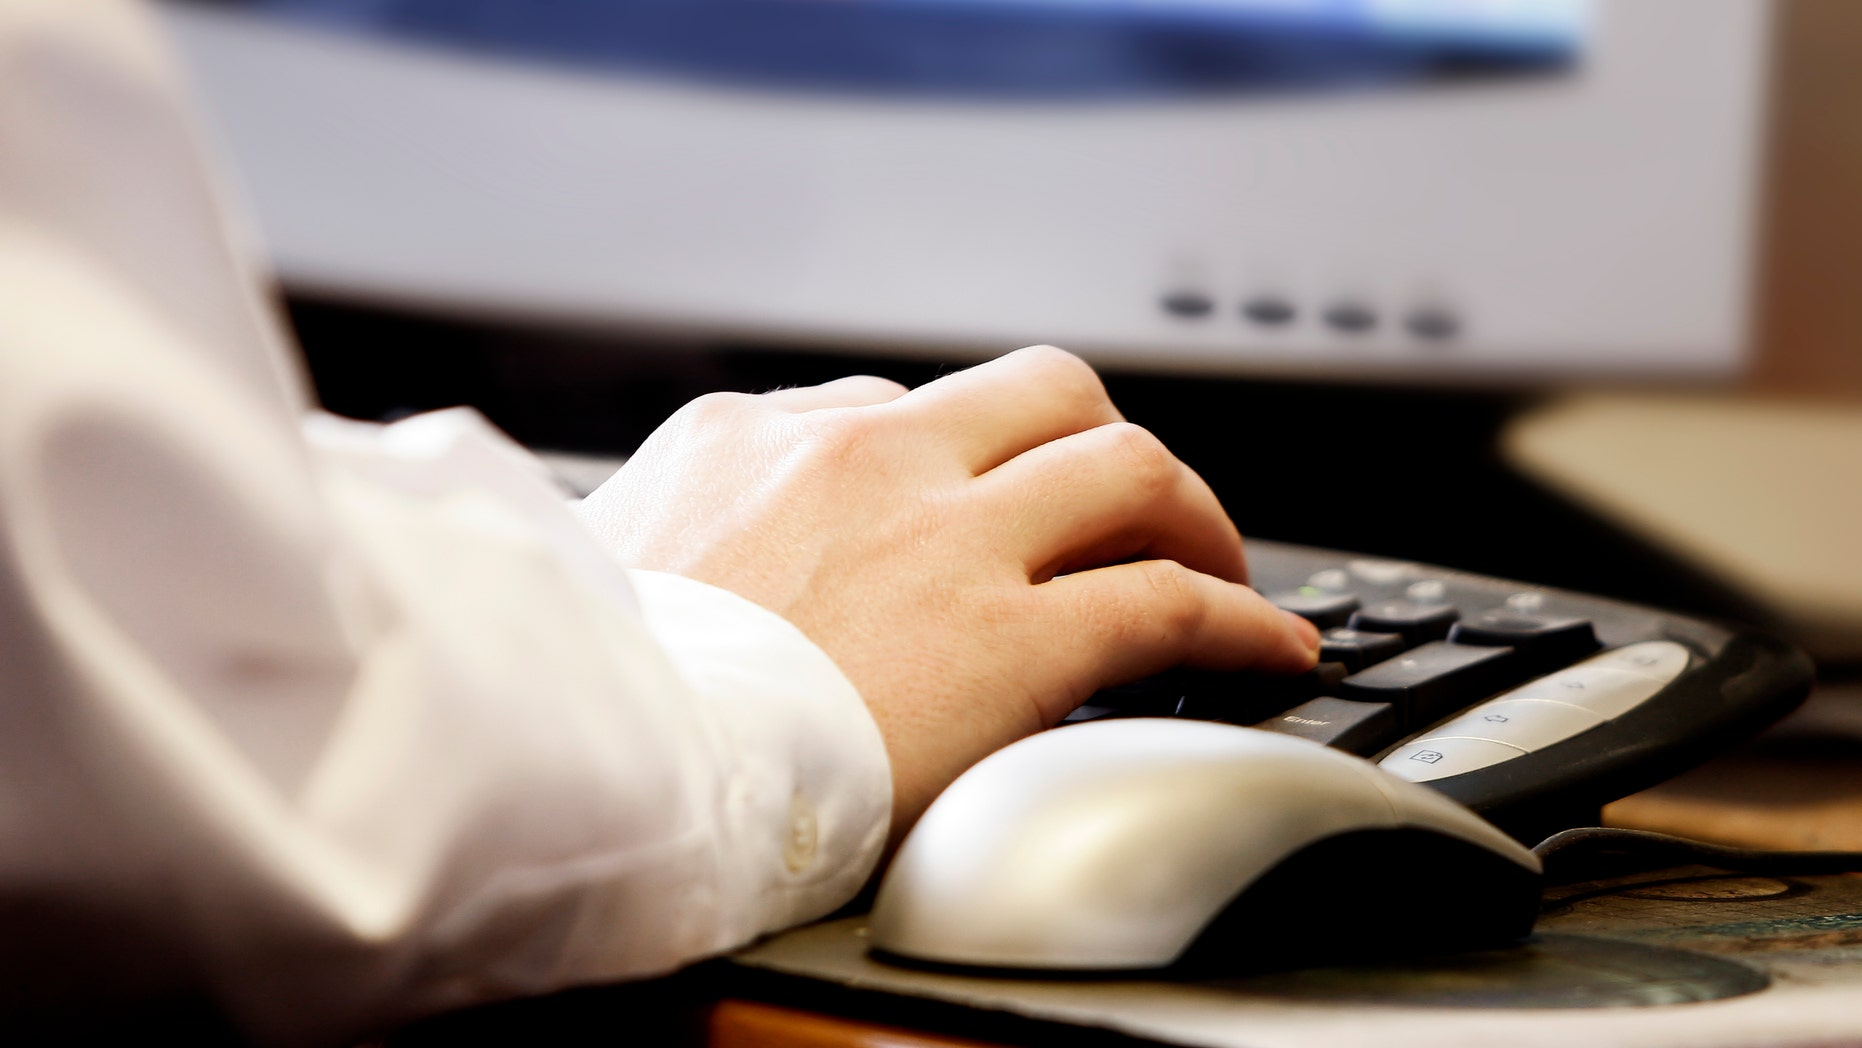 Close-up of a man's hand typing on a computer keyboard, with monitor and mouse (shallow focus).